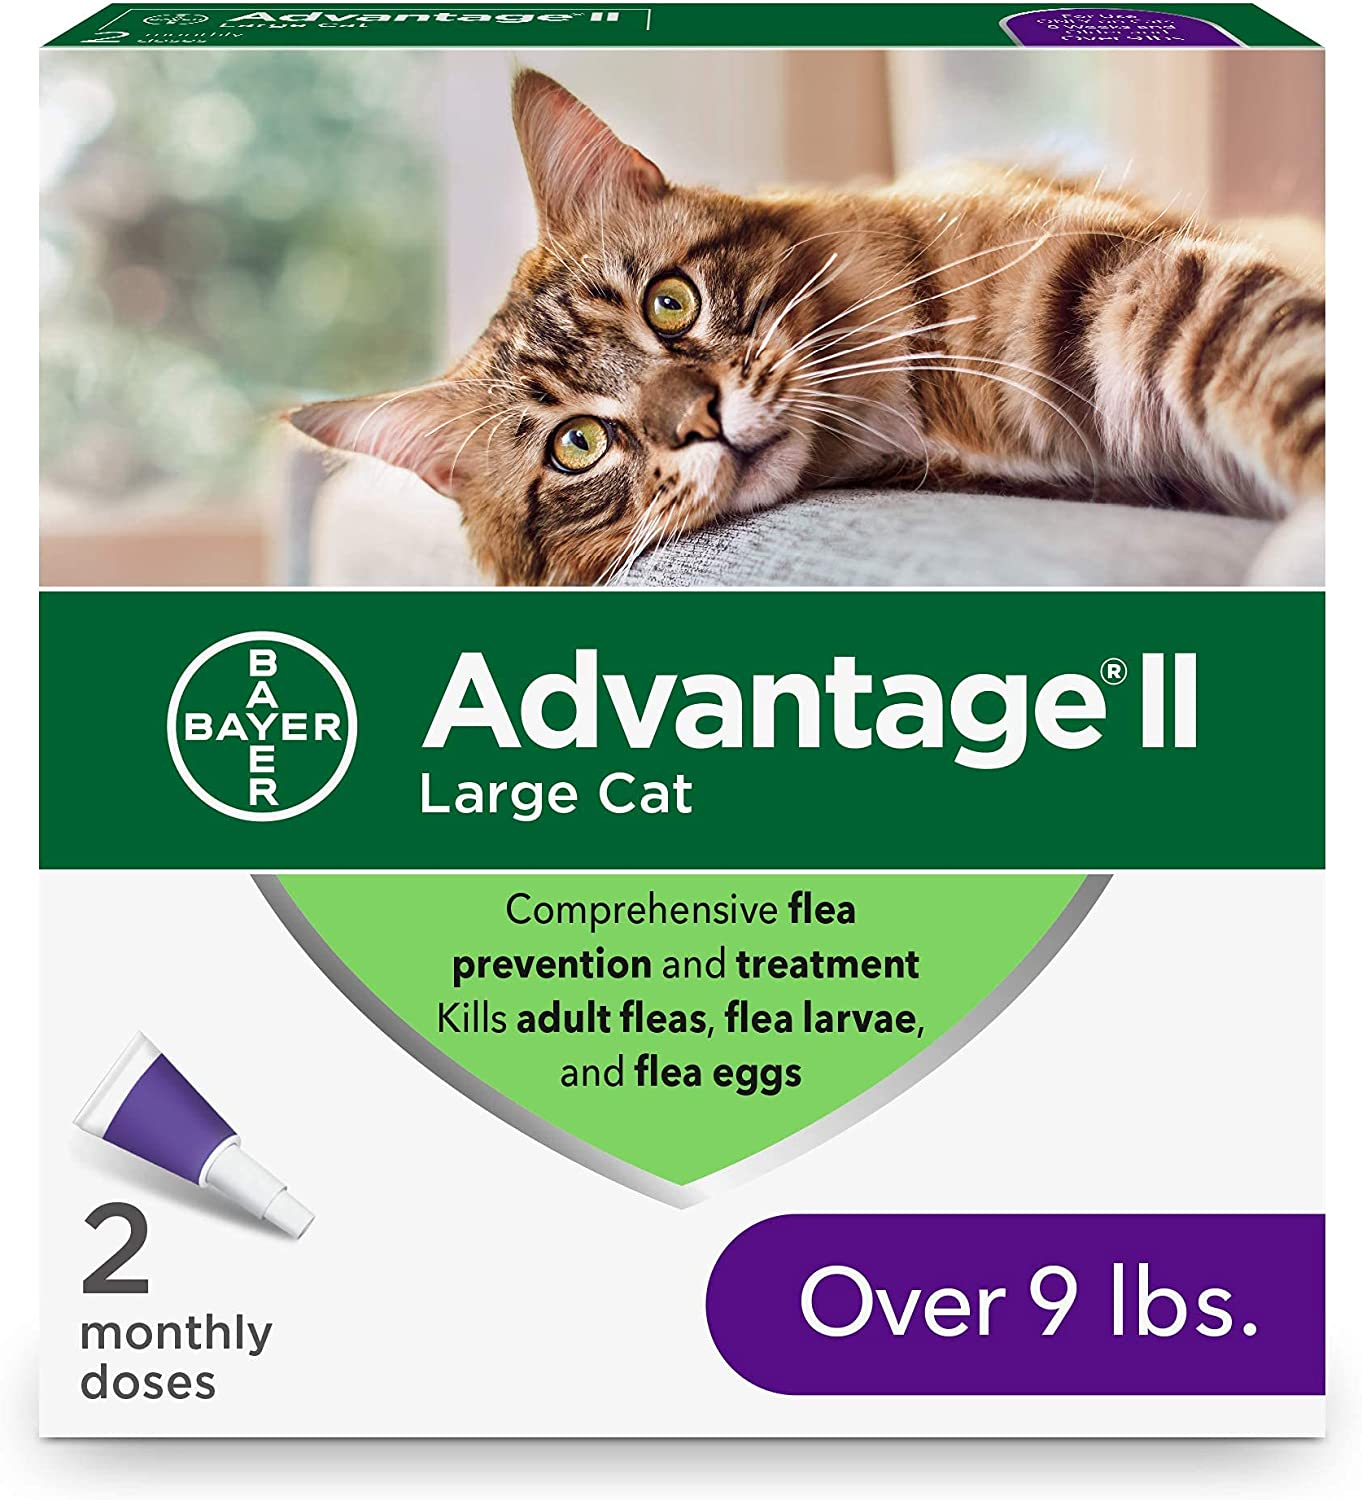 Advantage Japan Maker New Virginia Beach Mall II Flea Prevention and for Large Over Cats Treatment